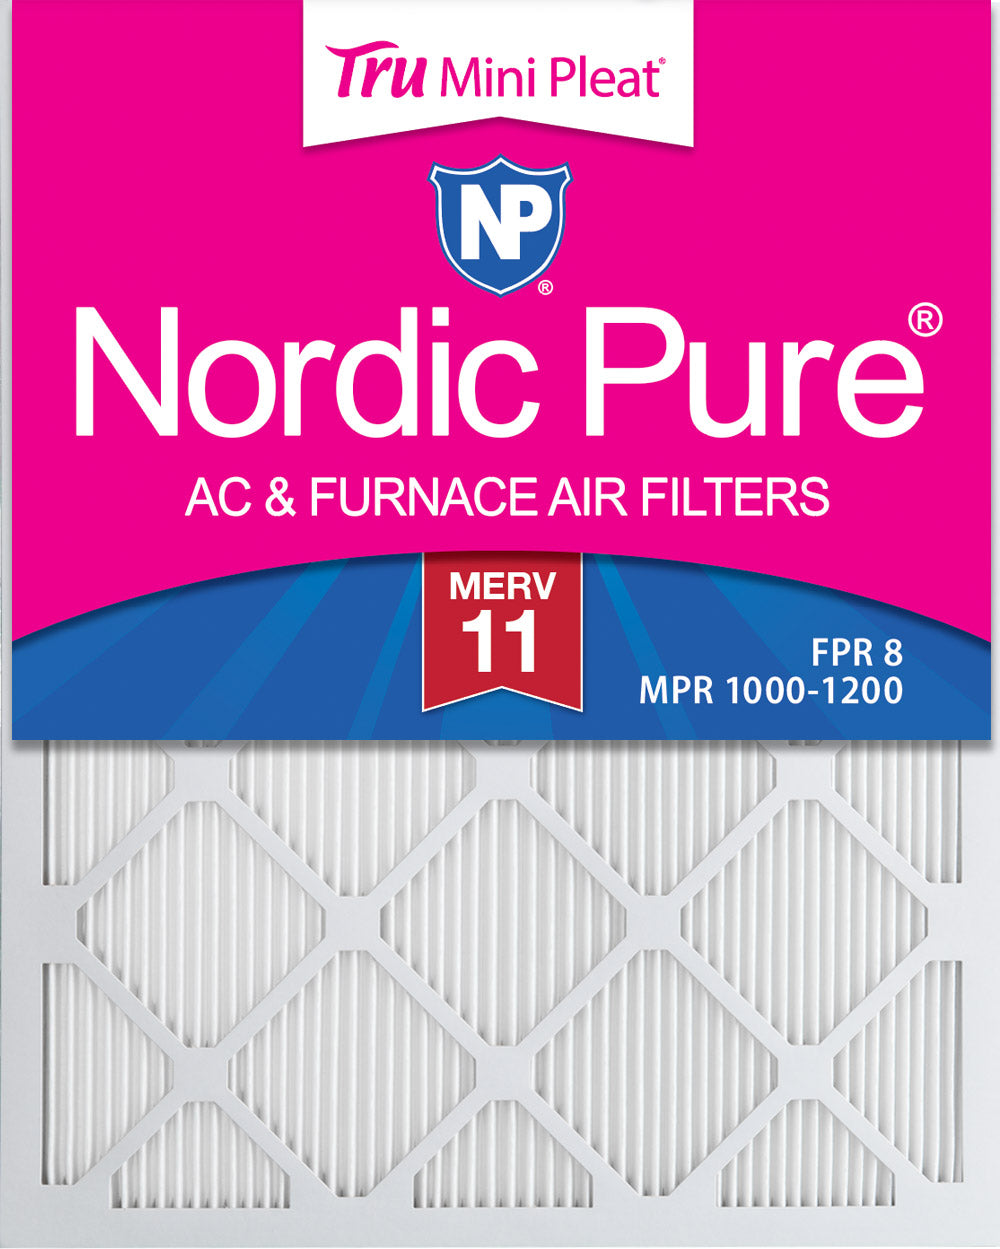 18x30x1 Tru Mini Pleat MERV 11 AC Furnace Air Filters 3 Pack